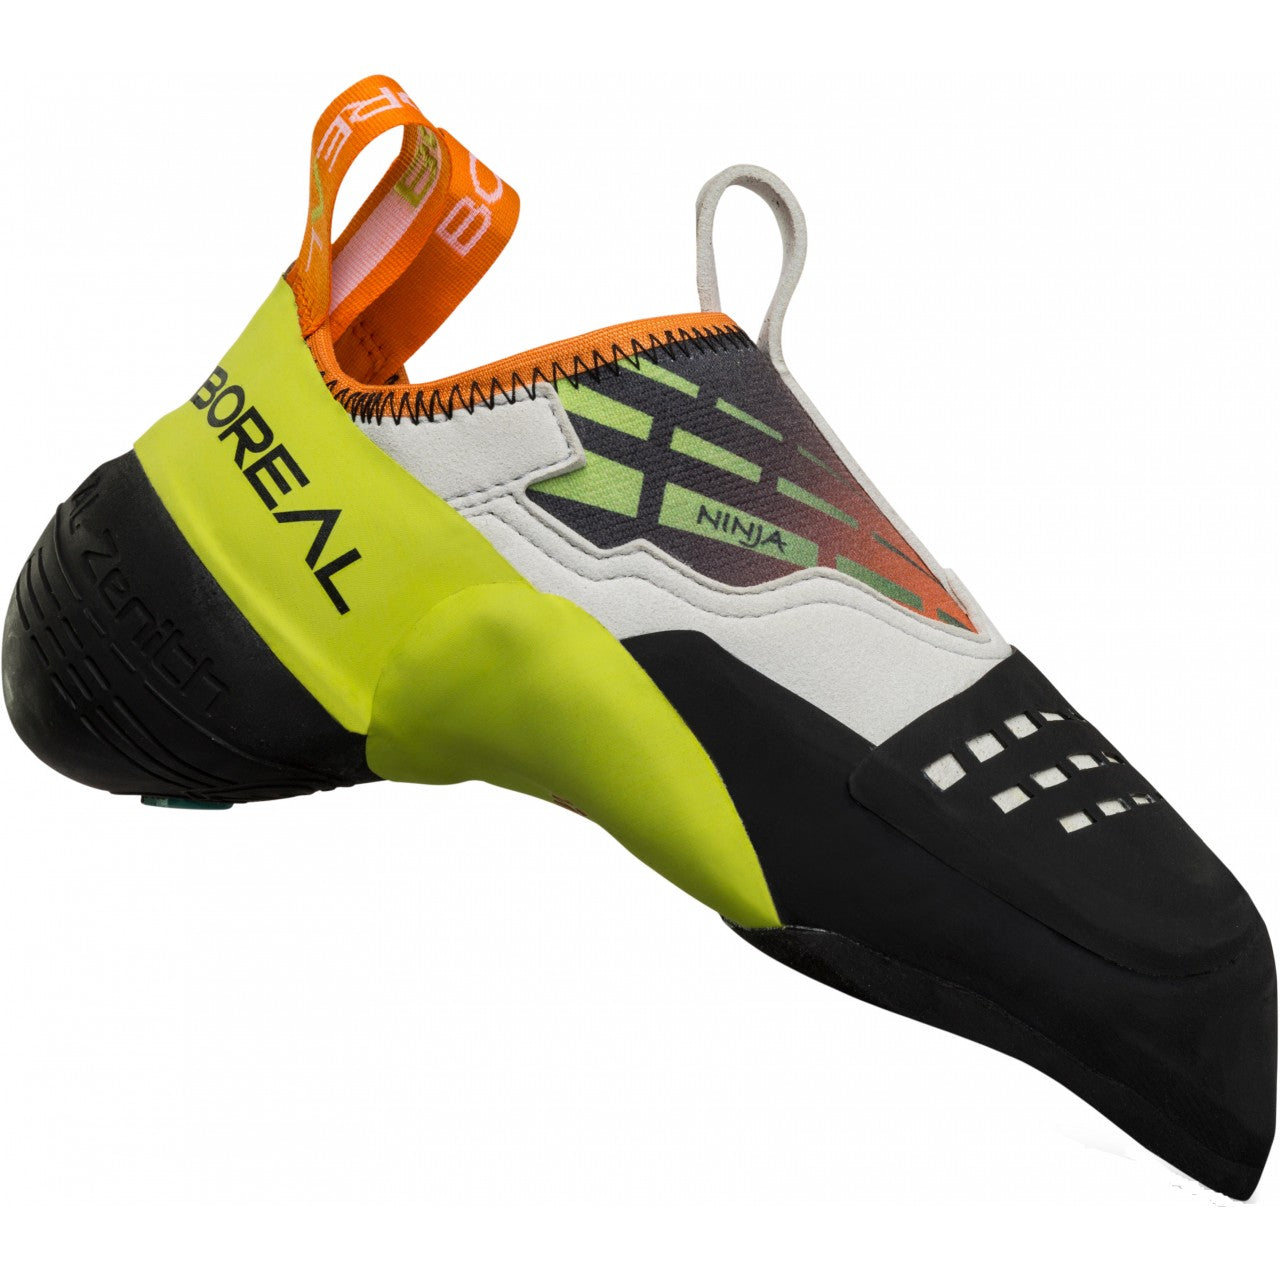 Boreal Ninja climbing shoe, outer side view